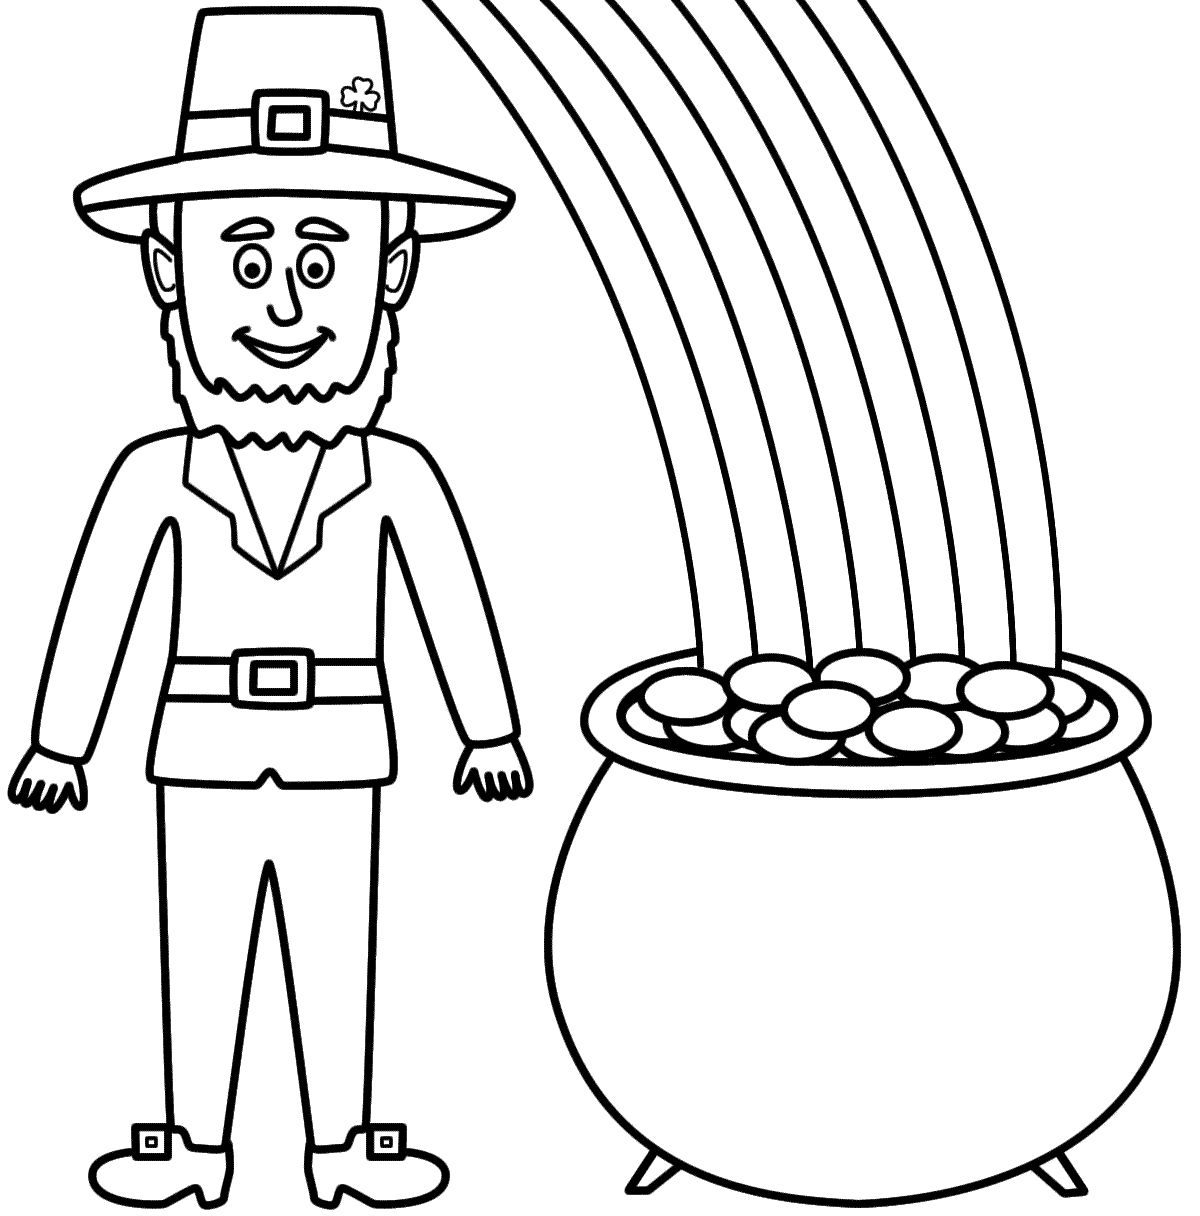 Leprecon coloring pages at getdrawings com free for personal use